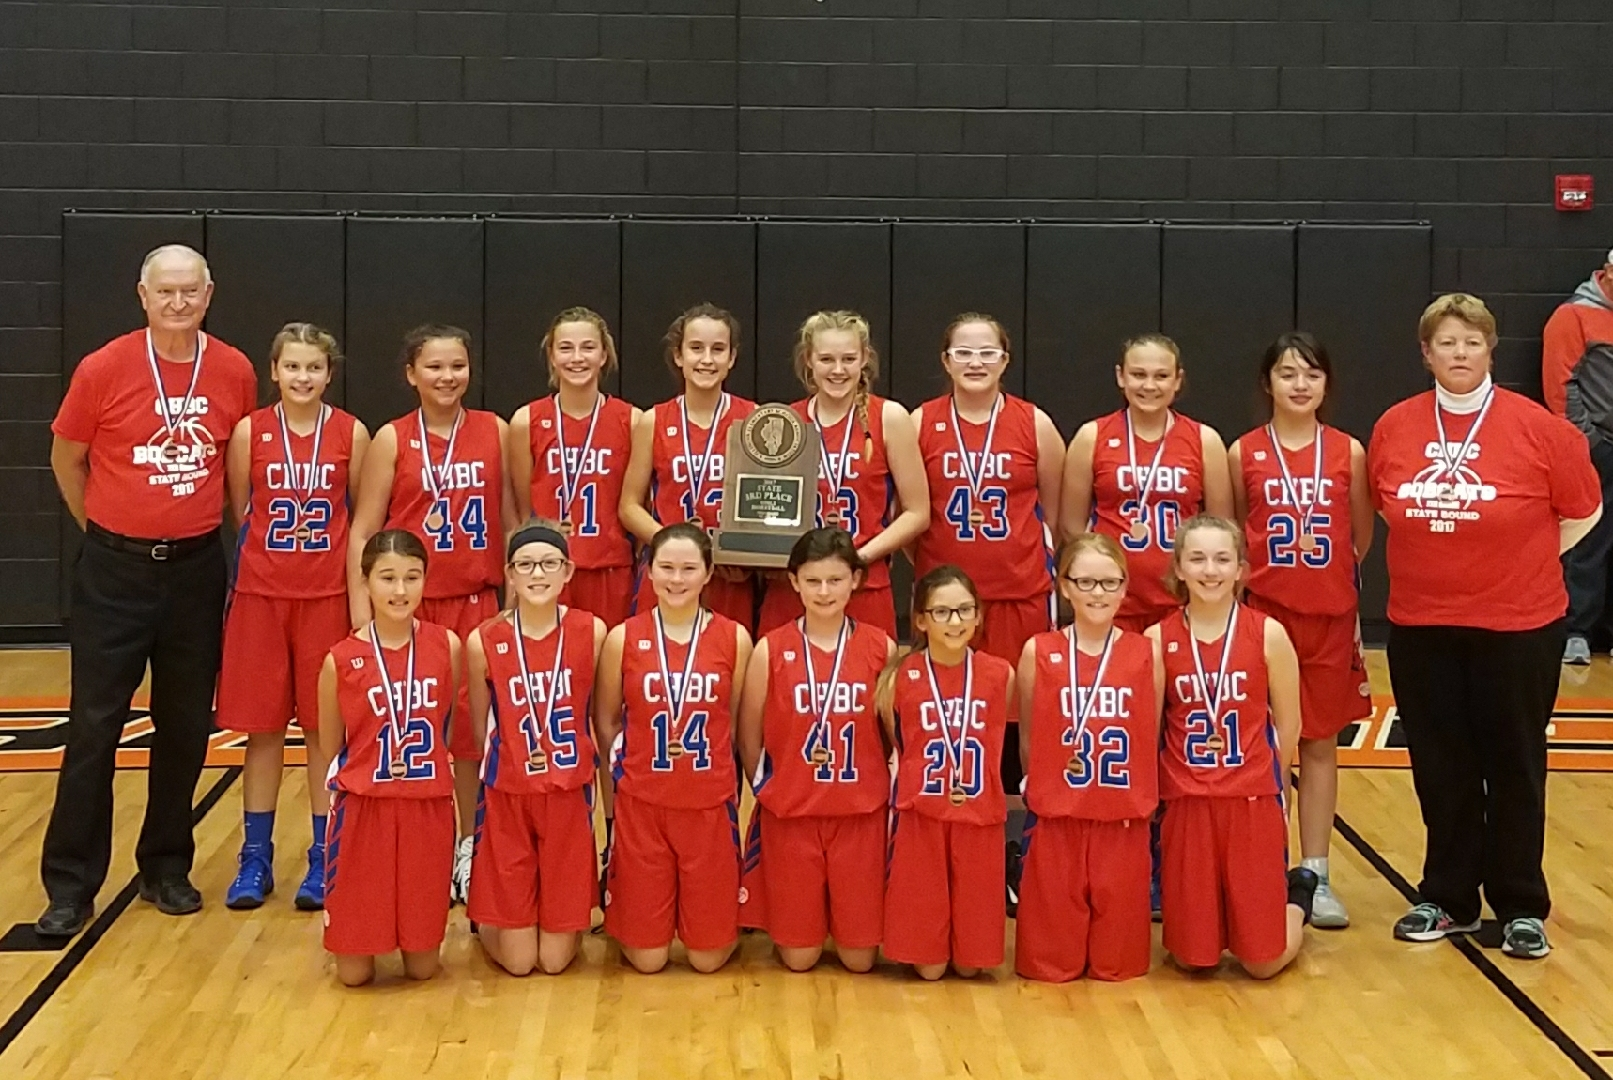 CHBC 7th grade girls basketball team takes 3rd place in State Tournament